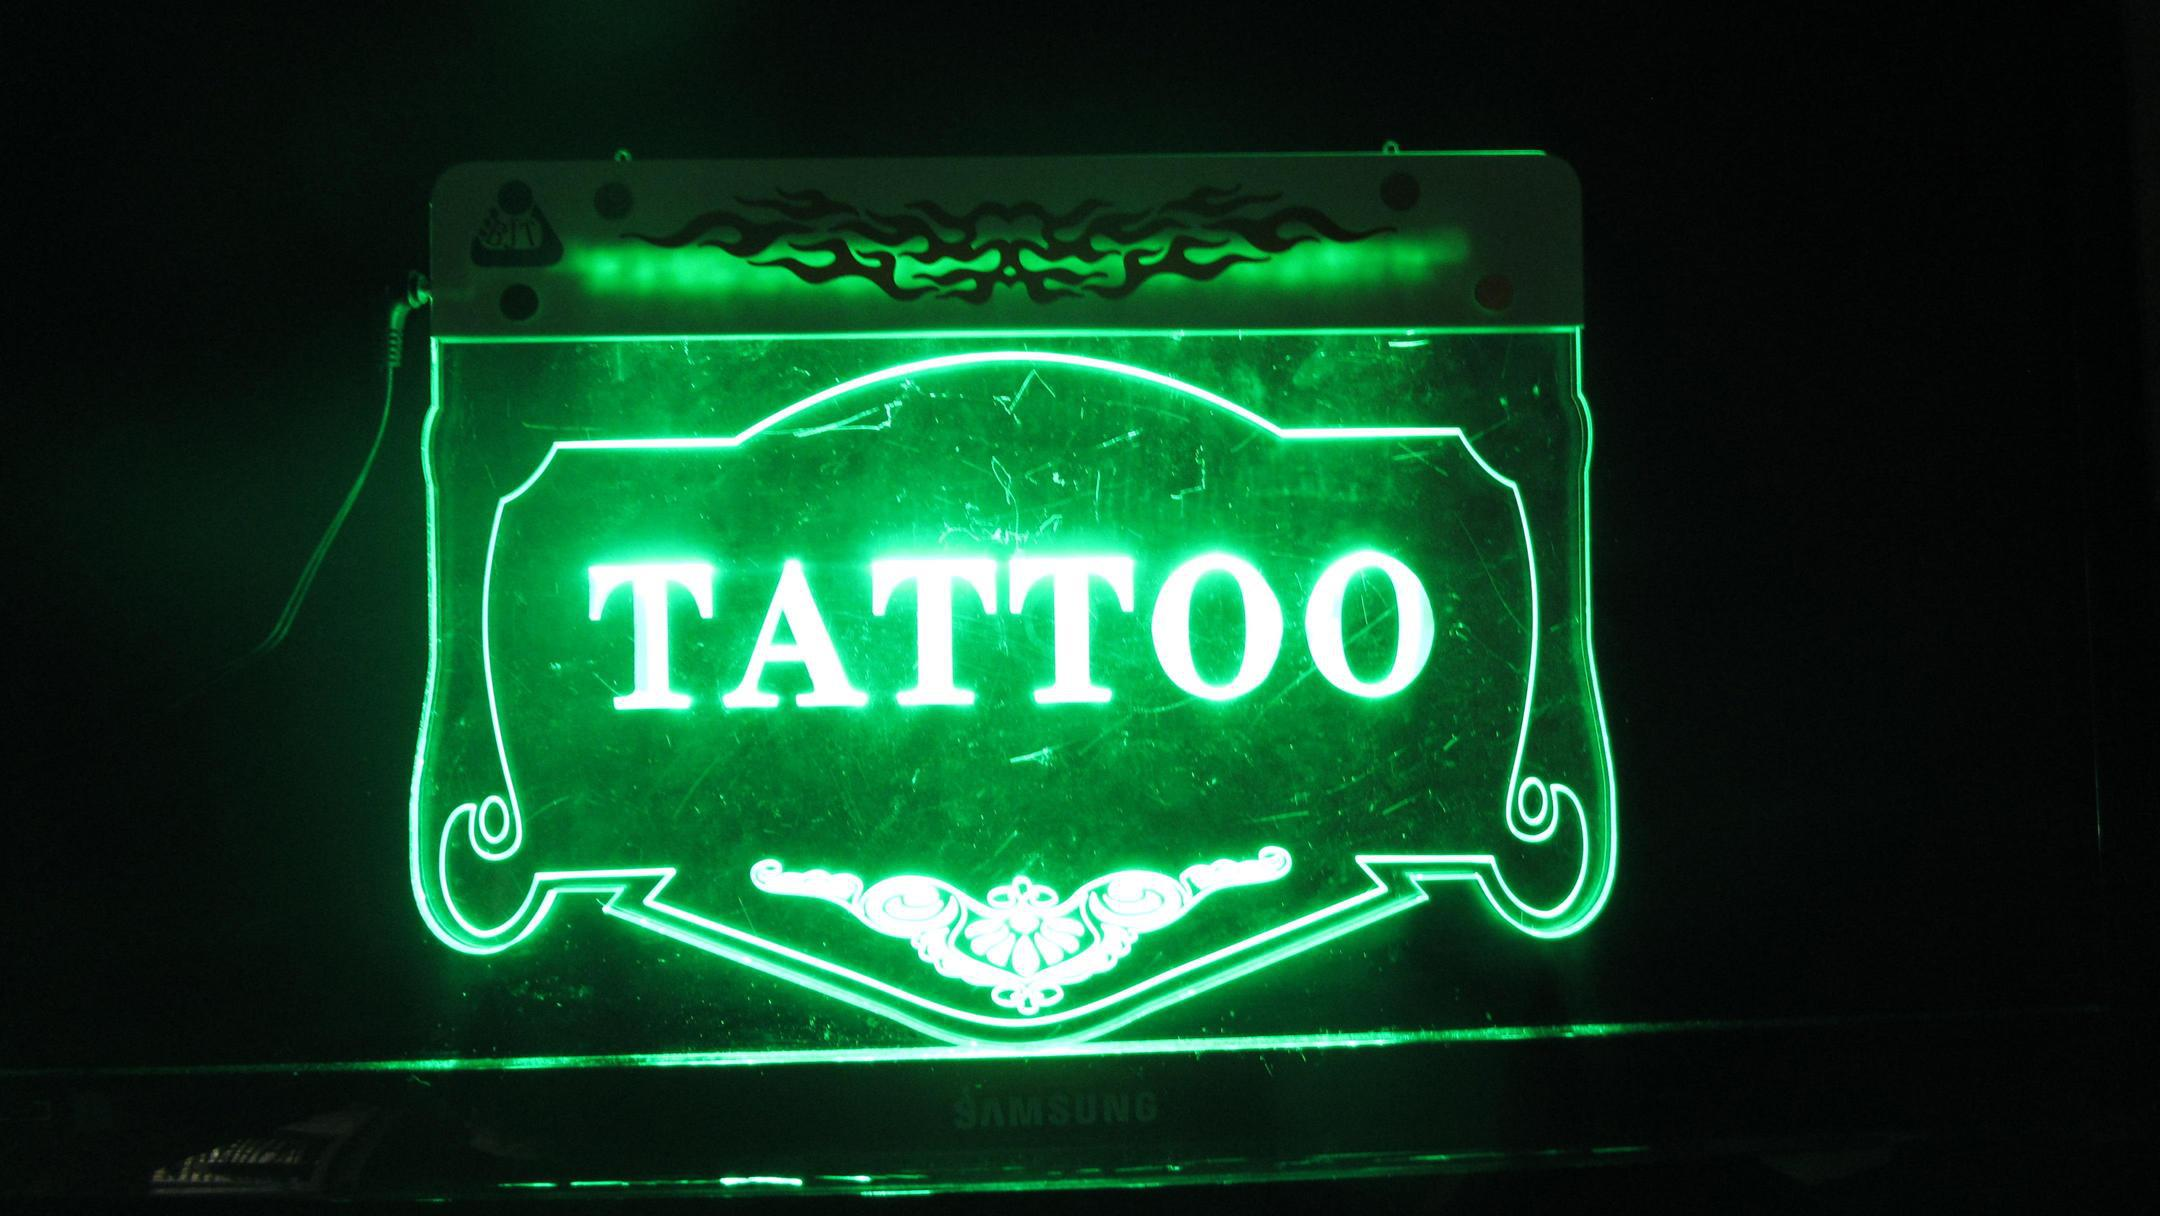 bjt led sign tattoo shop new neon sign tattoo light signs